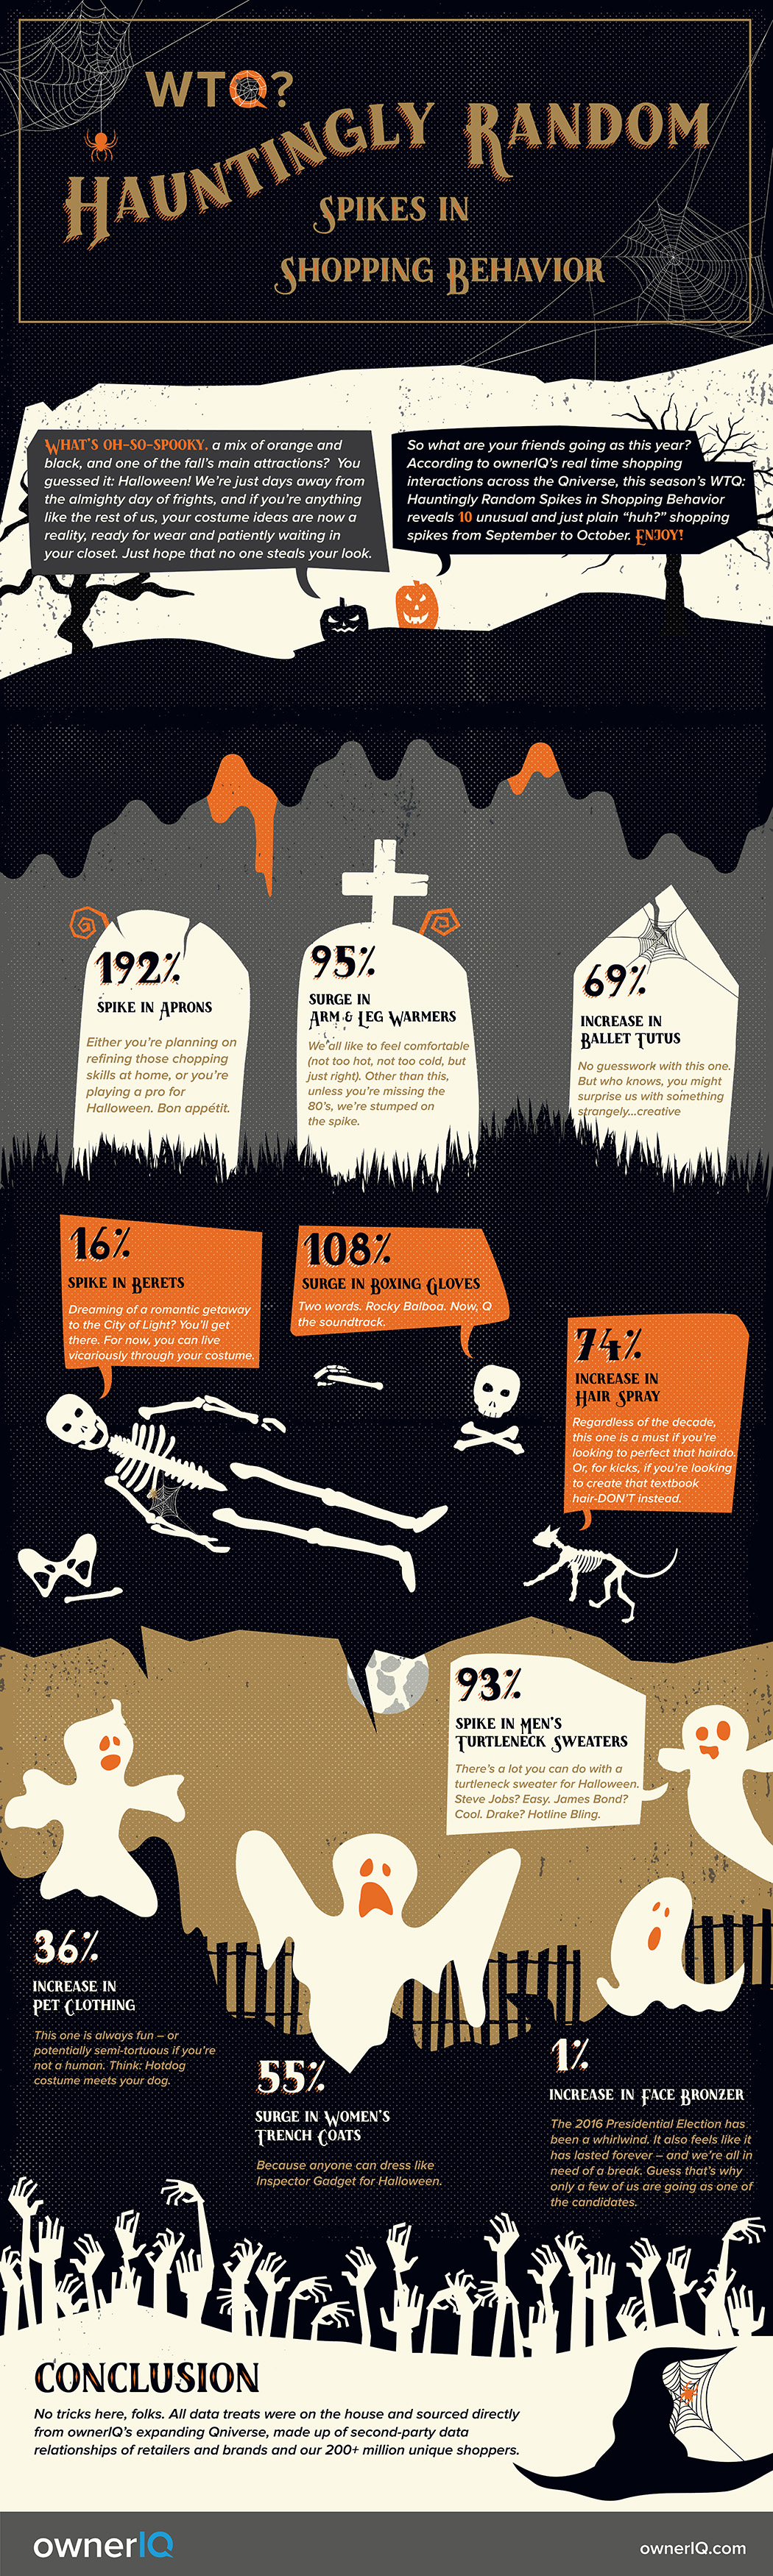 WTQ Hauntingly Random Spikes in Shopping Behavior Infographic